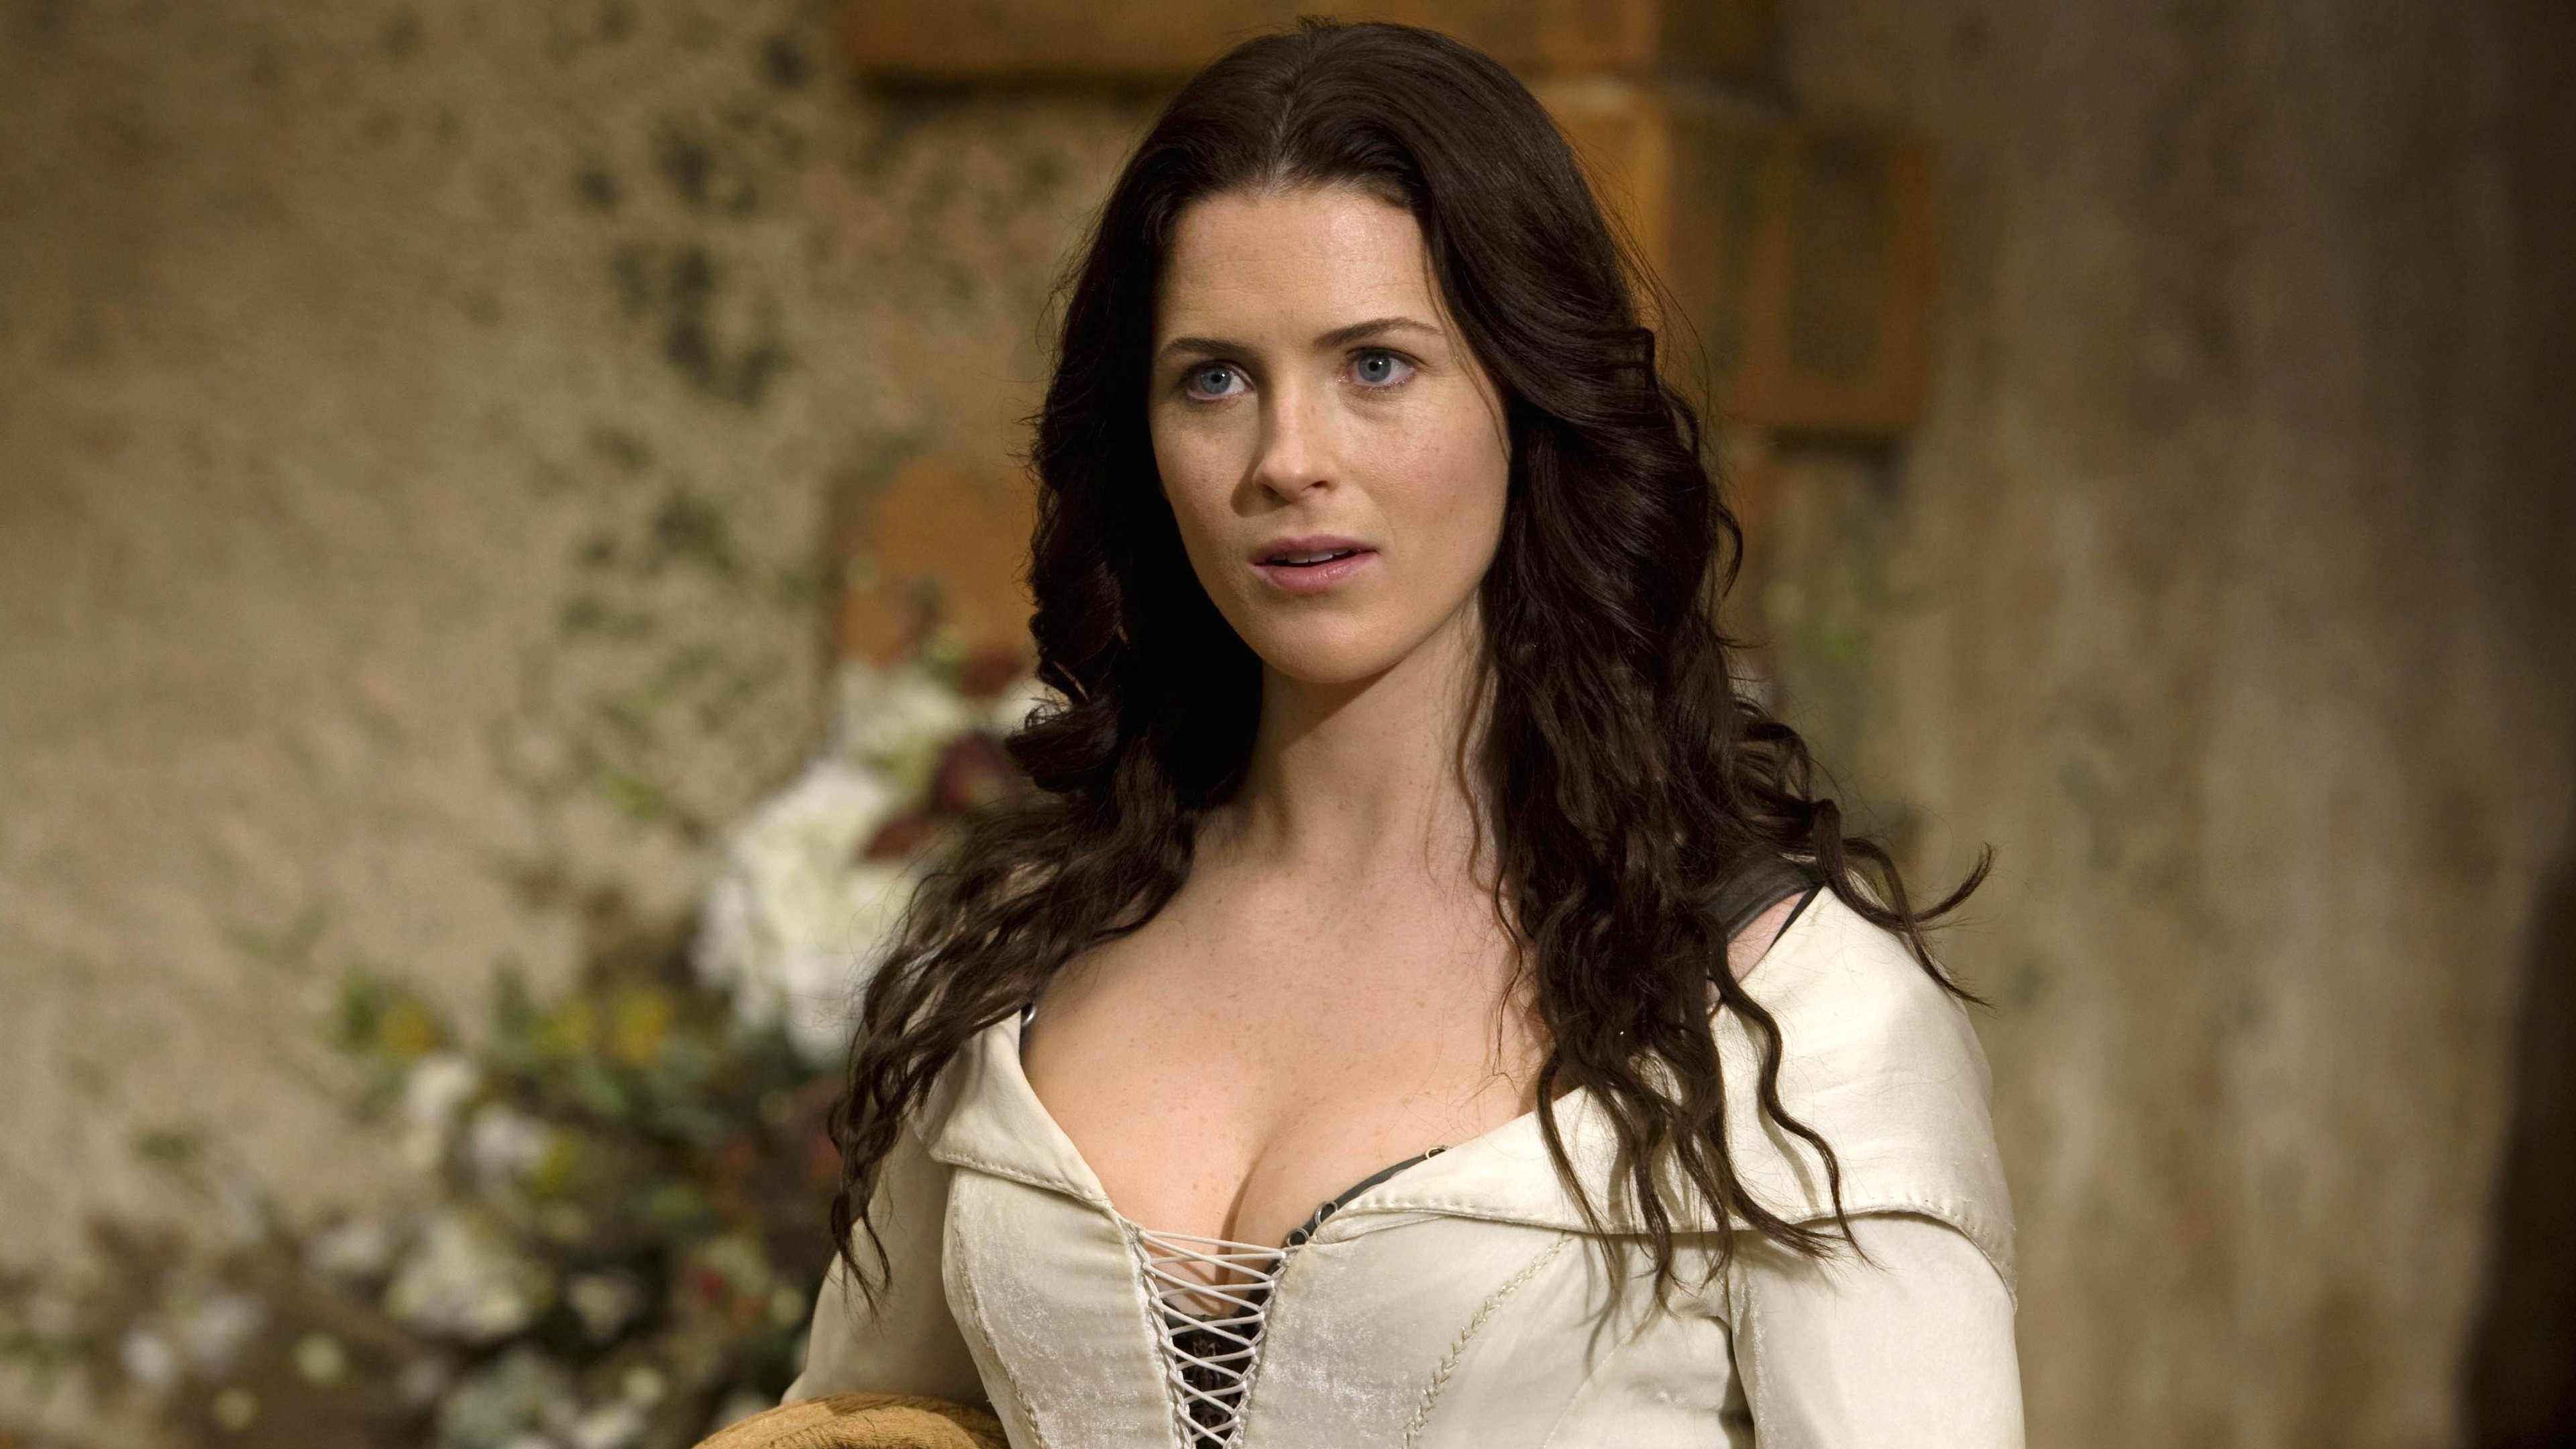 sexy images in legend of the seeker